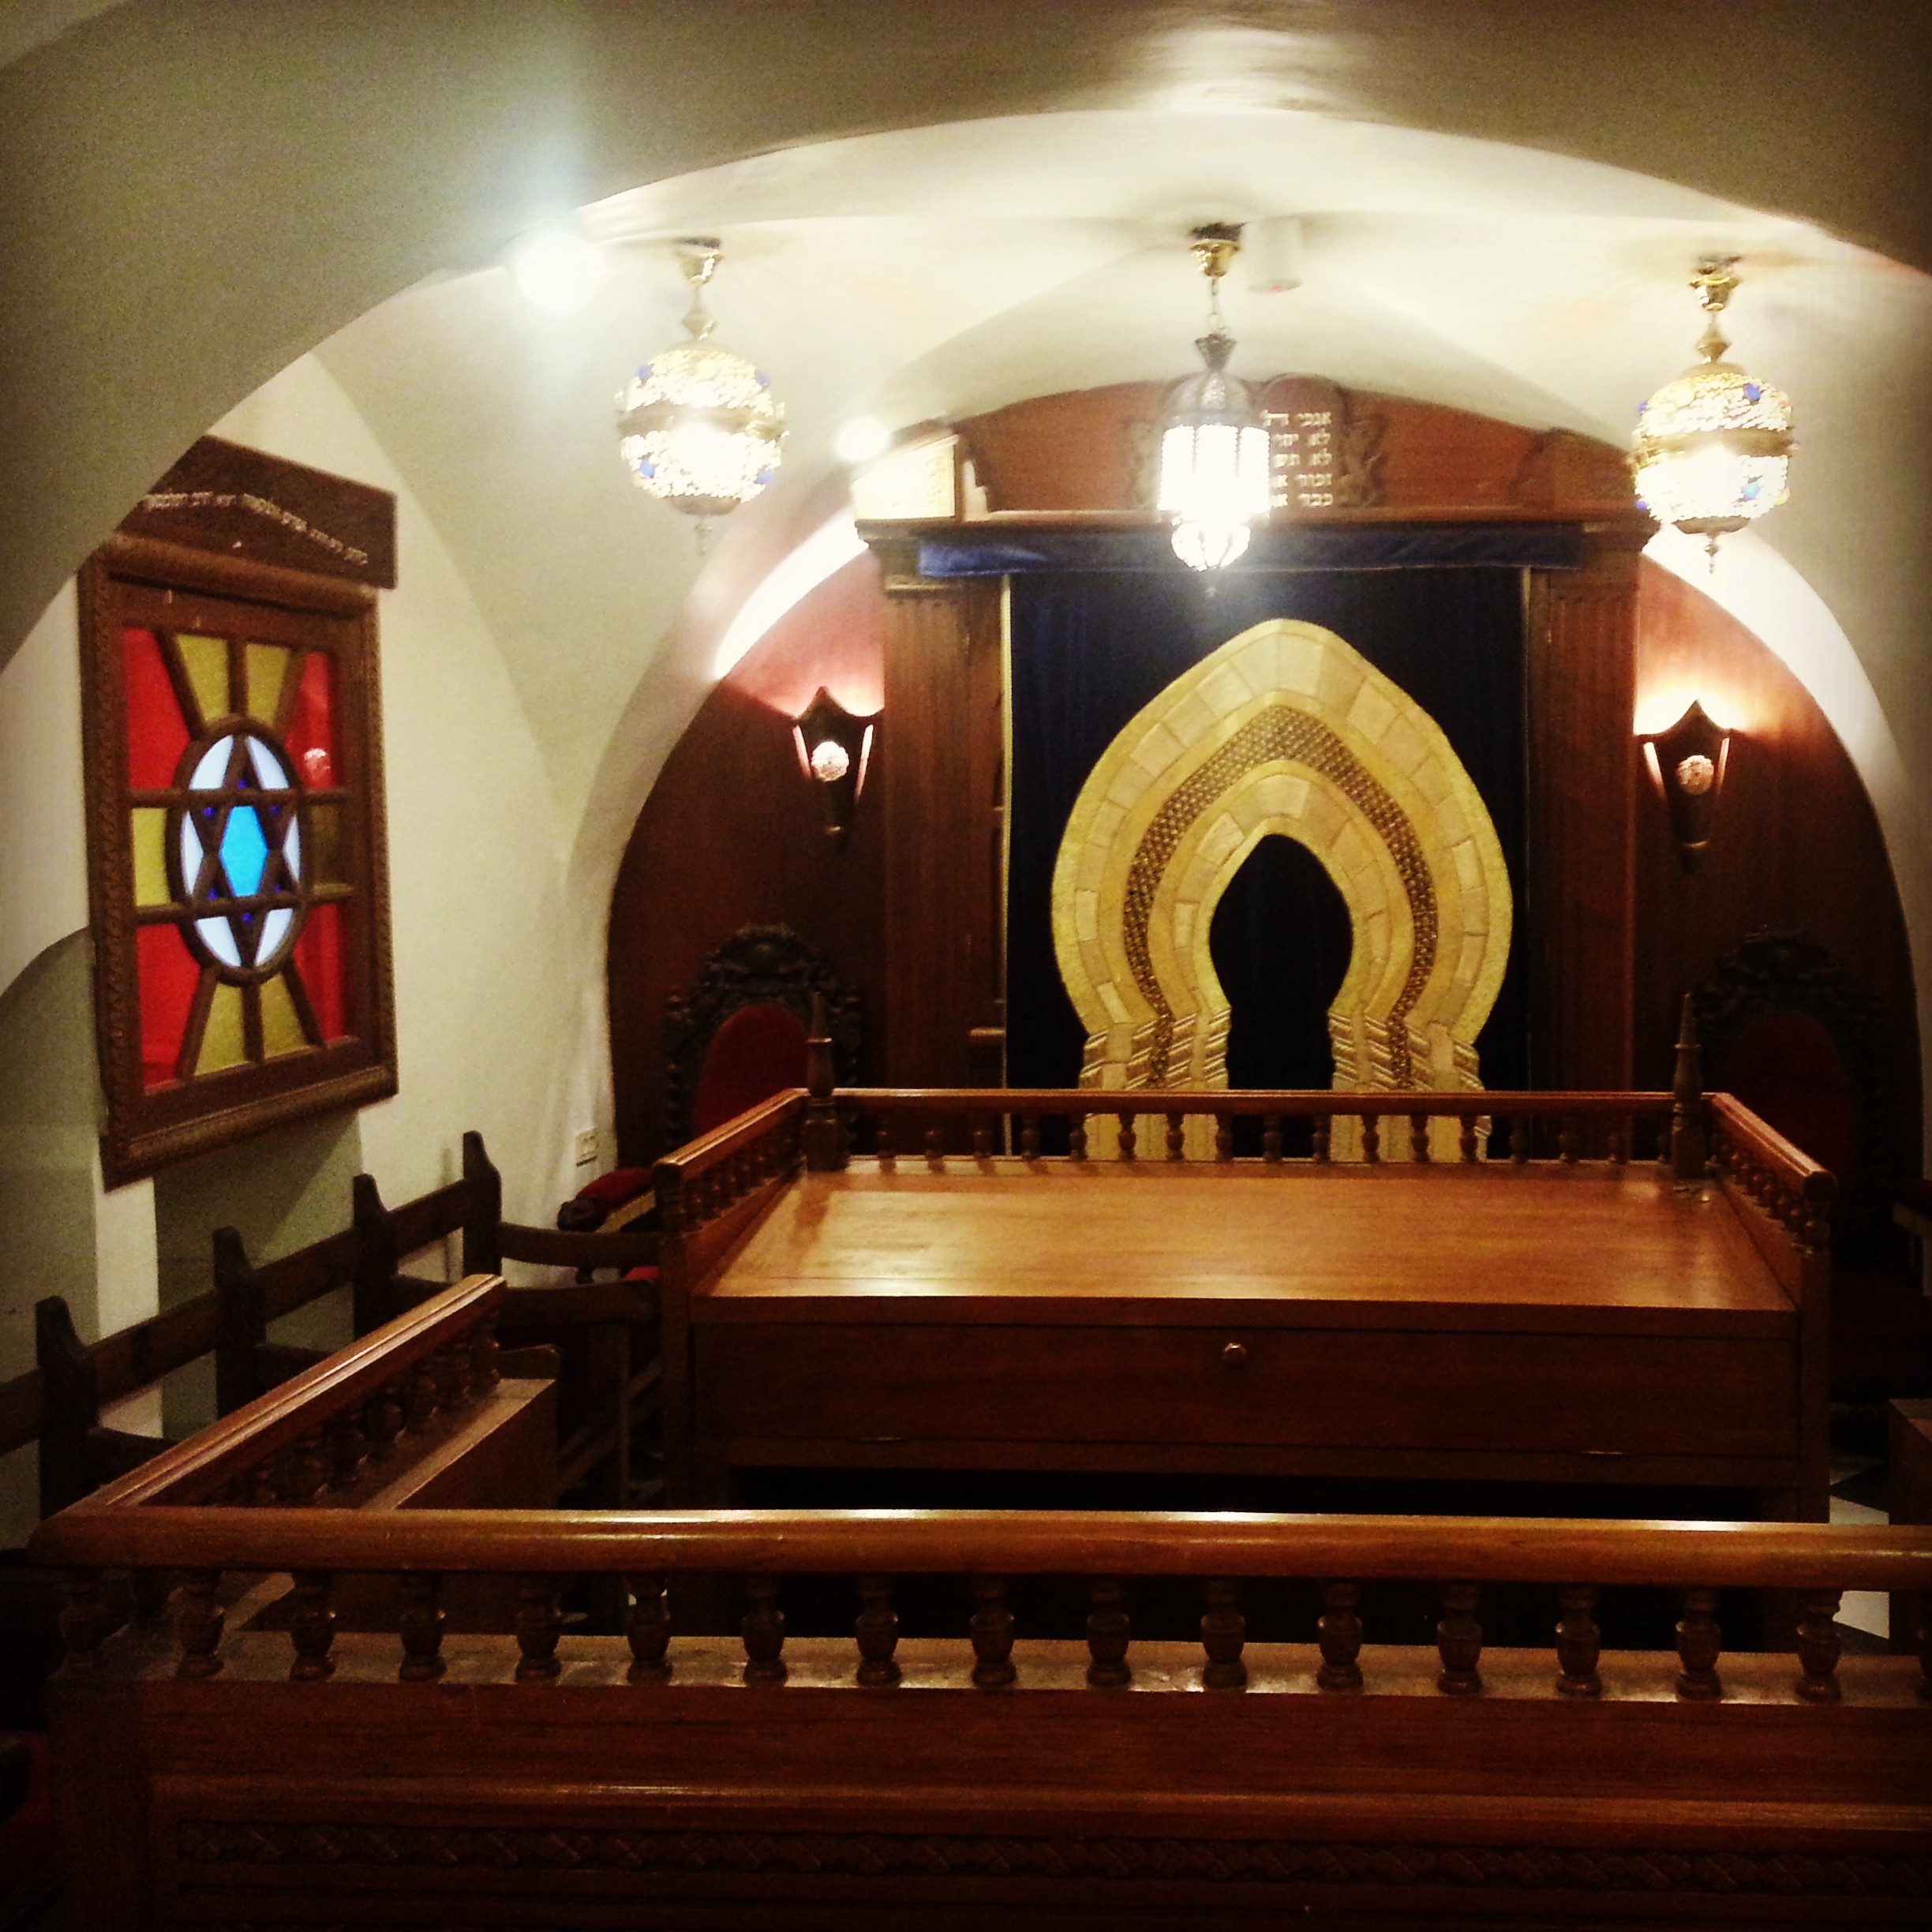 Tunisian Synagogue in the Worldwide North Africa Jewish Heritage Centre, Jerusalem